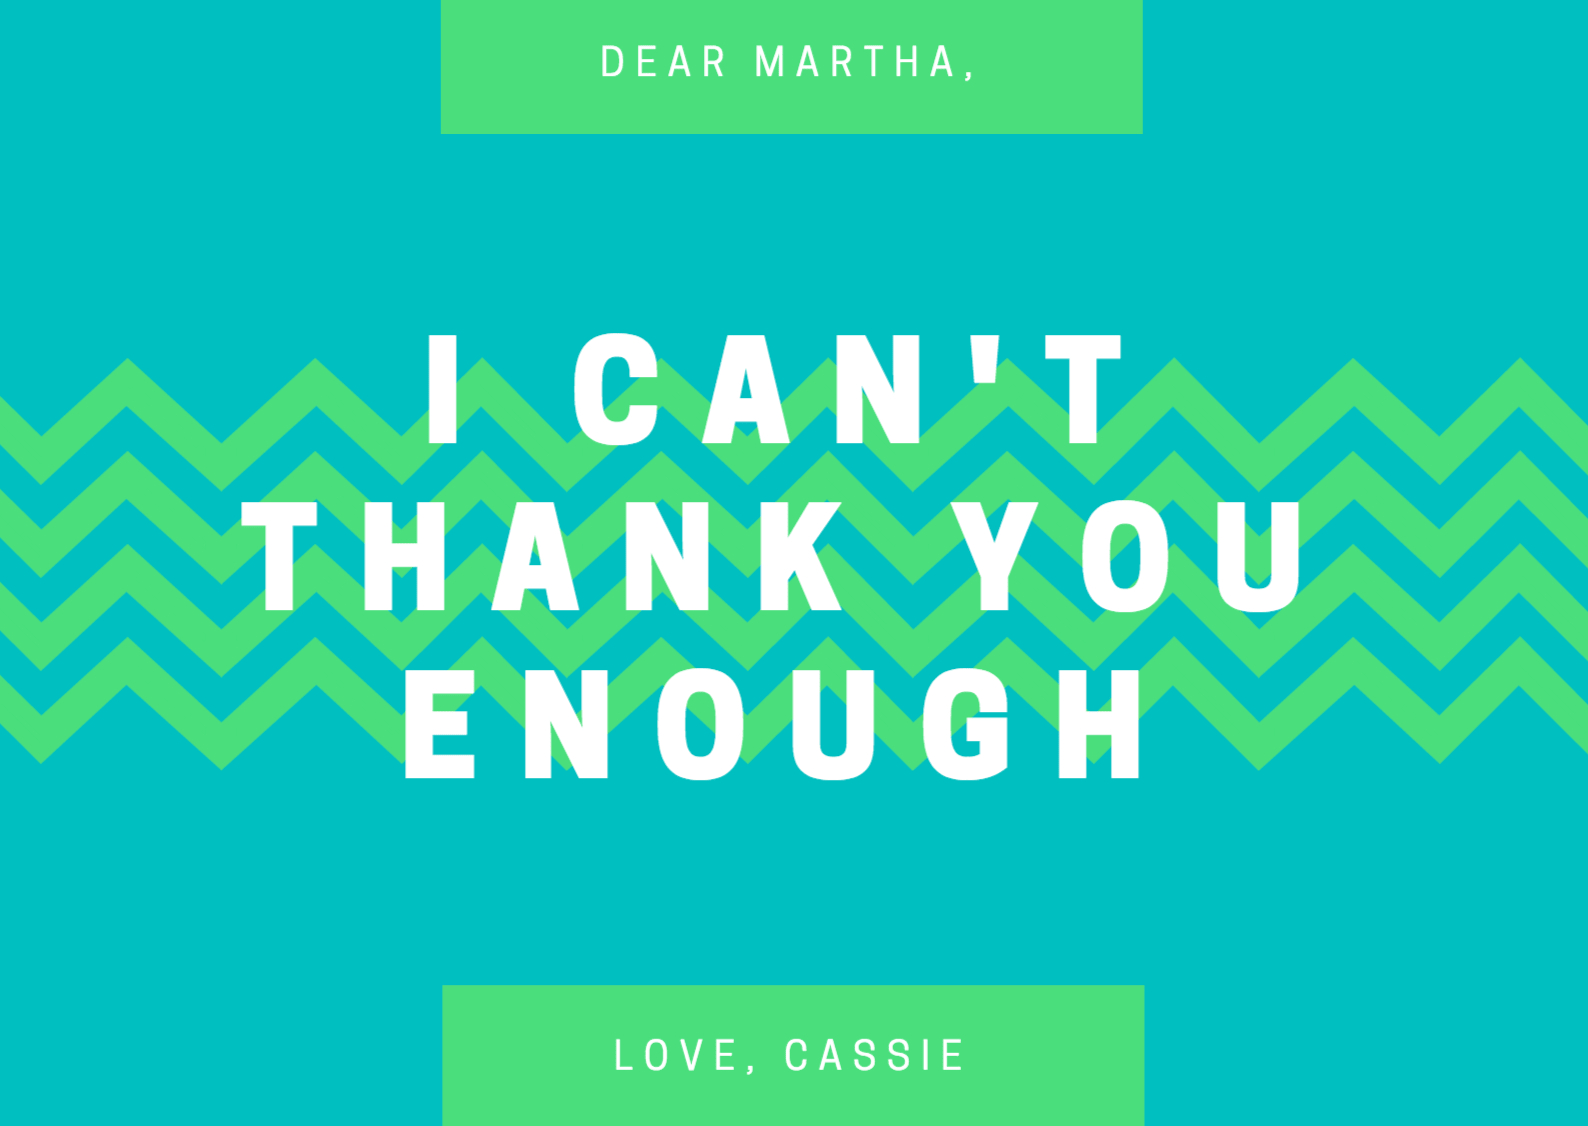 Design A Custom Thank You Card - Canva - Free Personalized Thank You Cards Printable